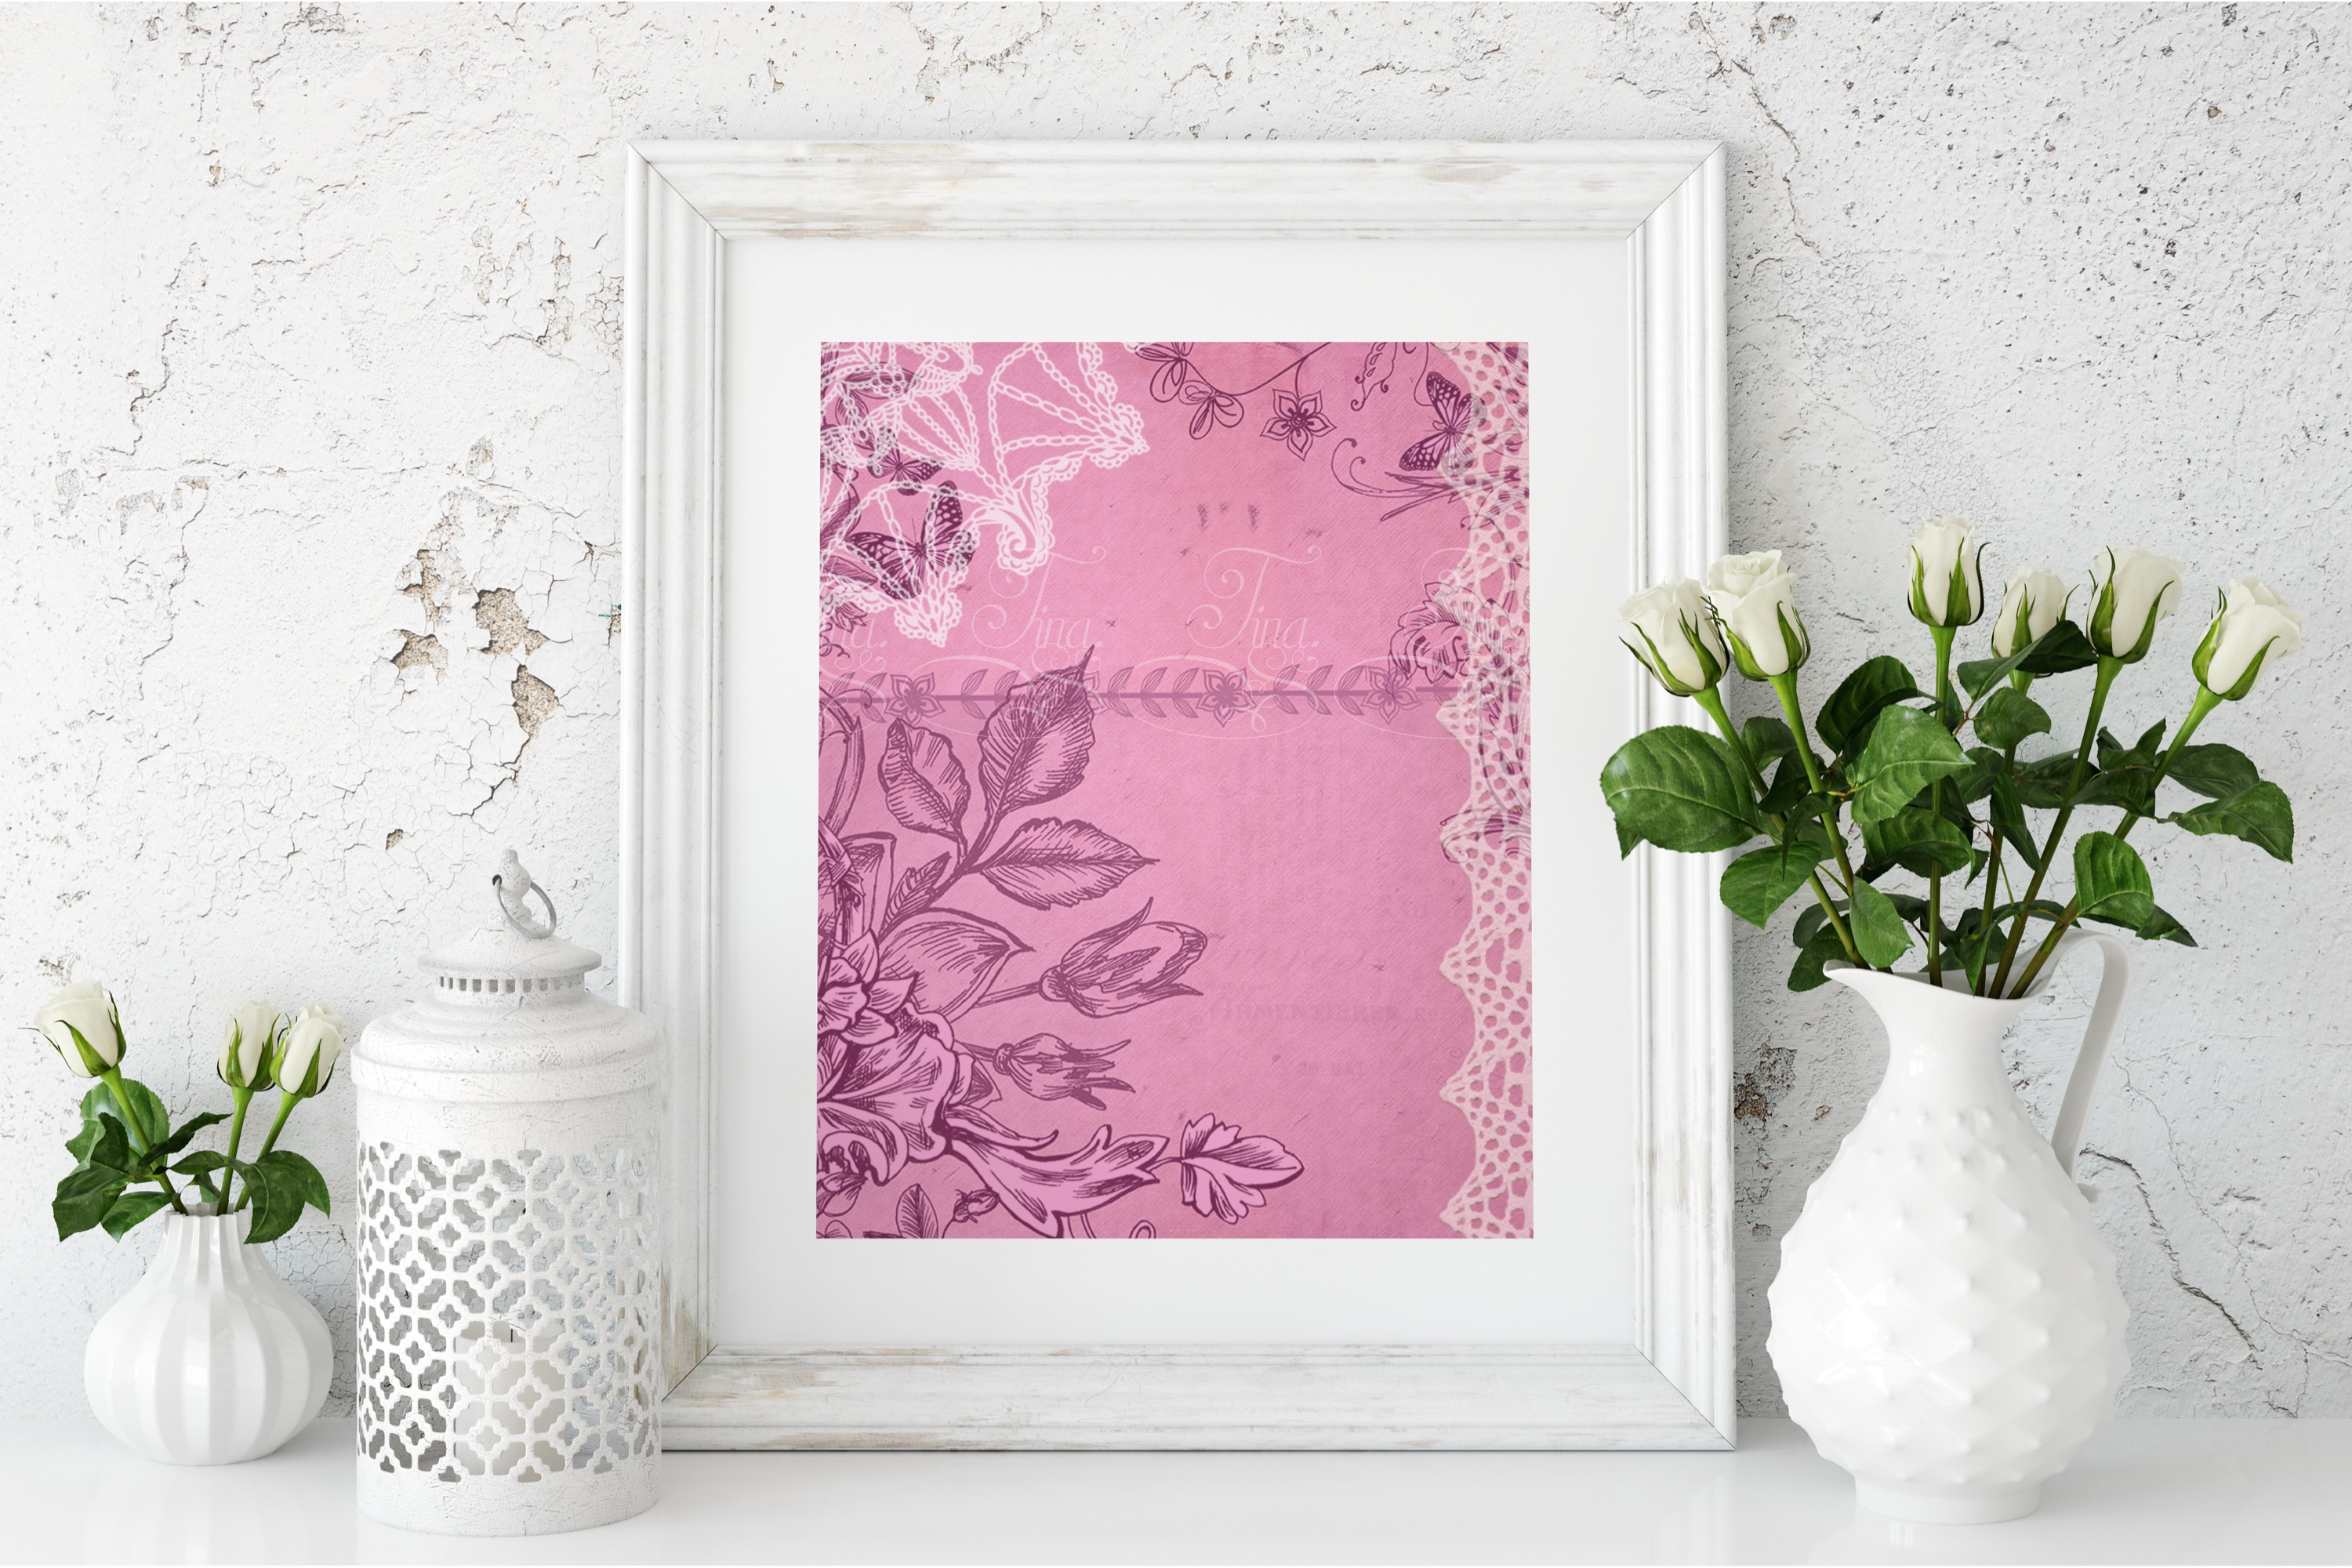 Rose Pink and Lace Doily Floral 091618R1 example image 2